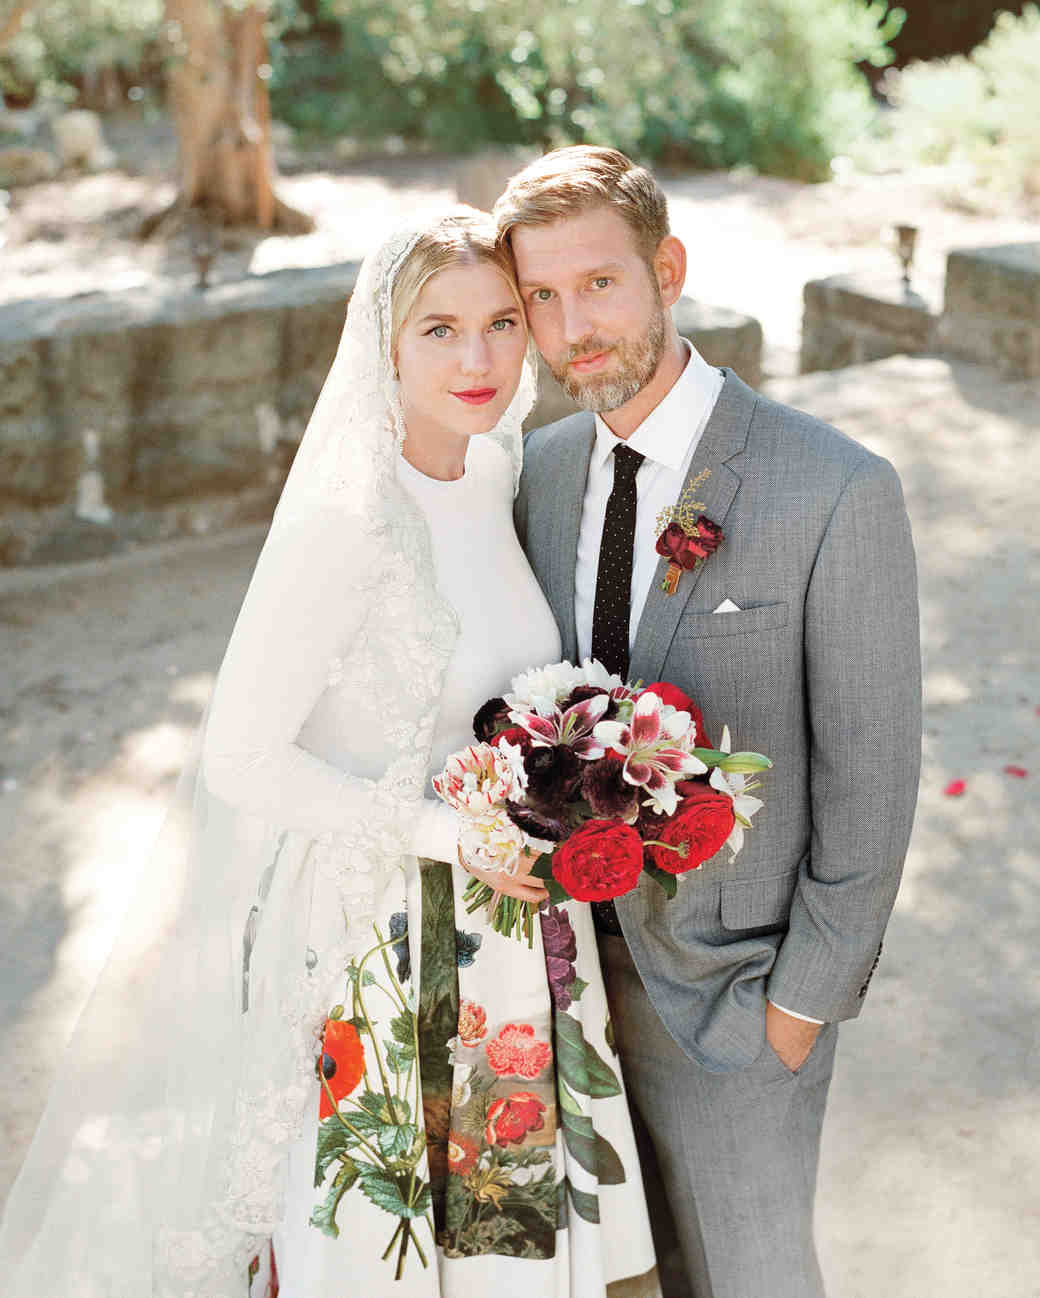 petra-marc-wedding-santa-barbara-0741-s111812.jpg